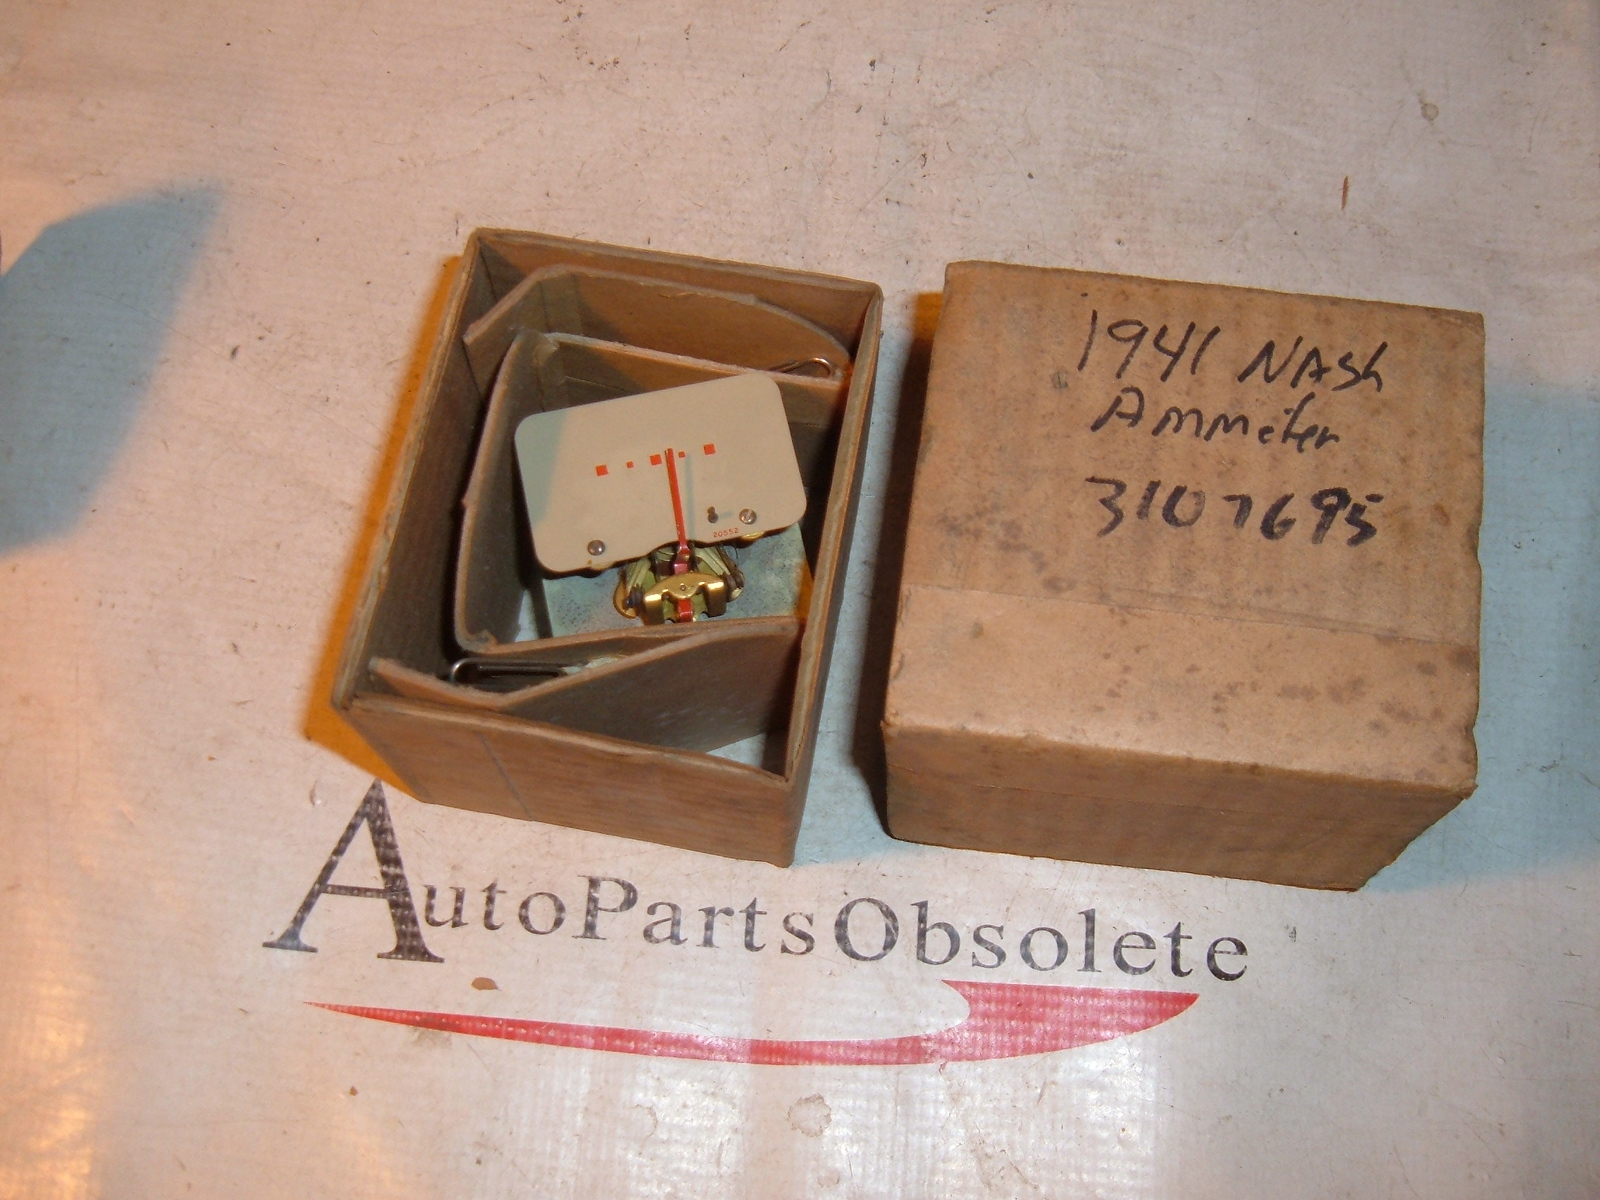 View Product1941 nash ammeter gauge nos 3107695 (z 3107695)